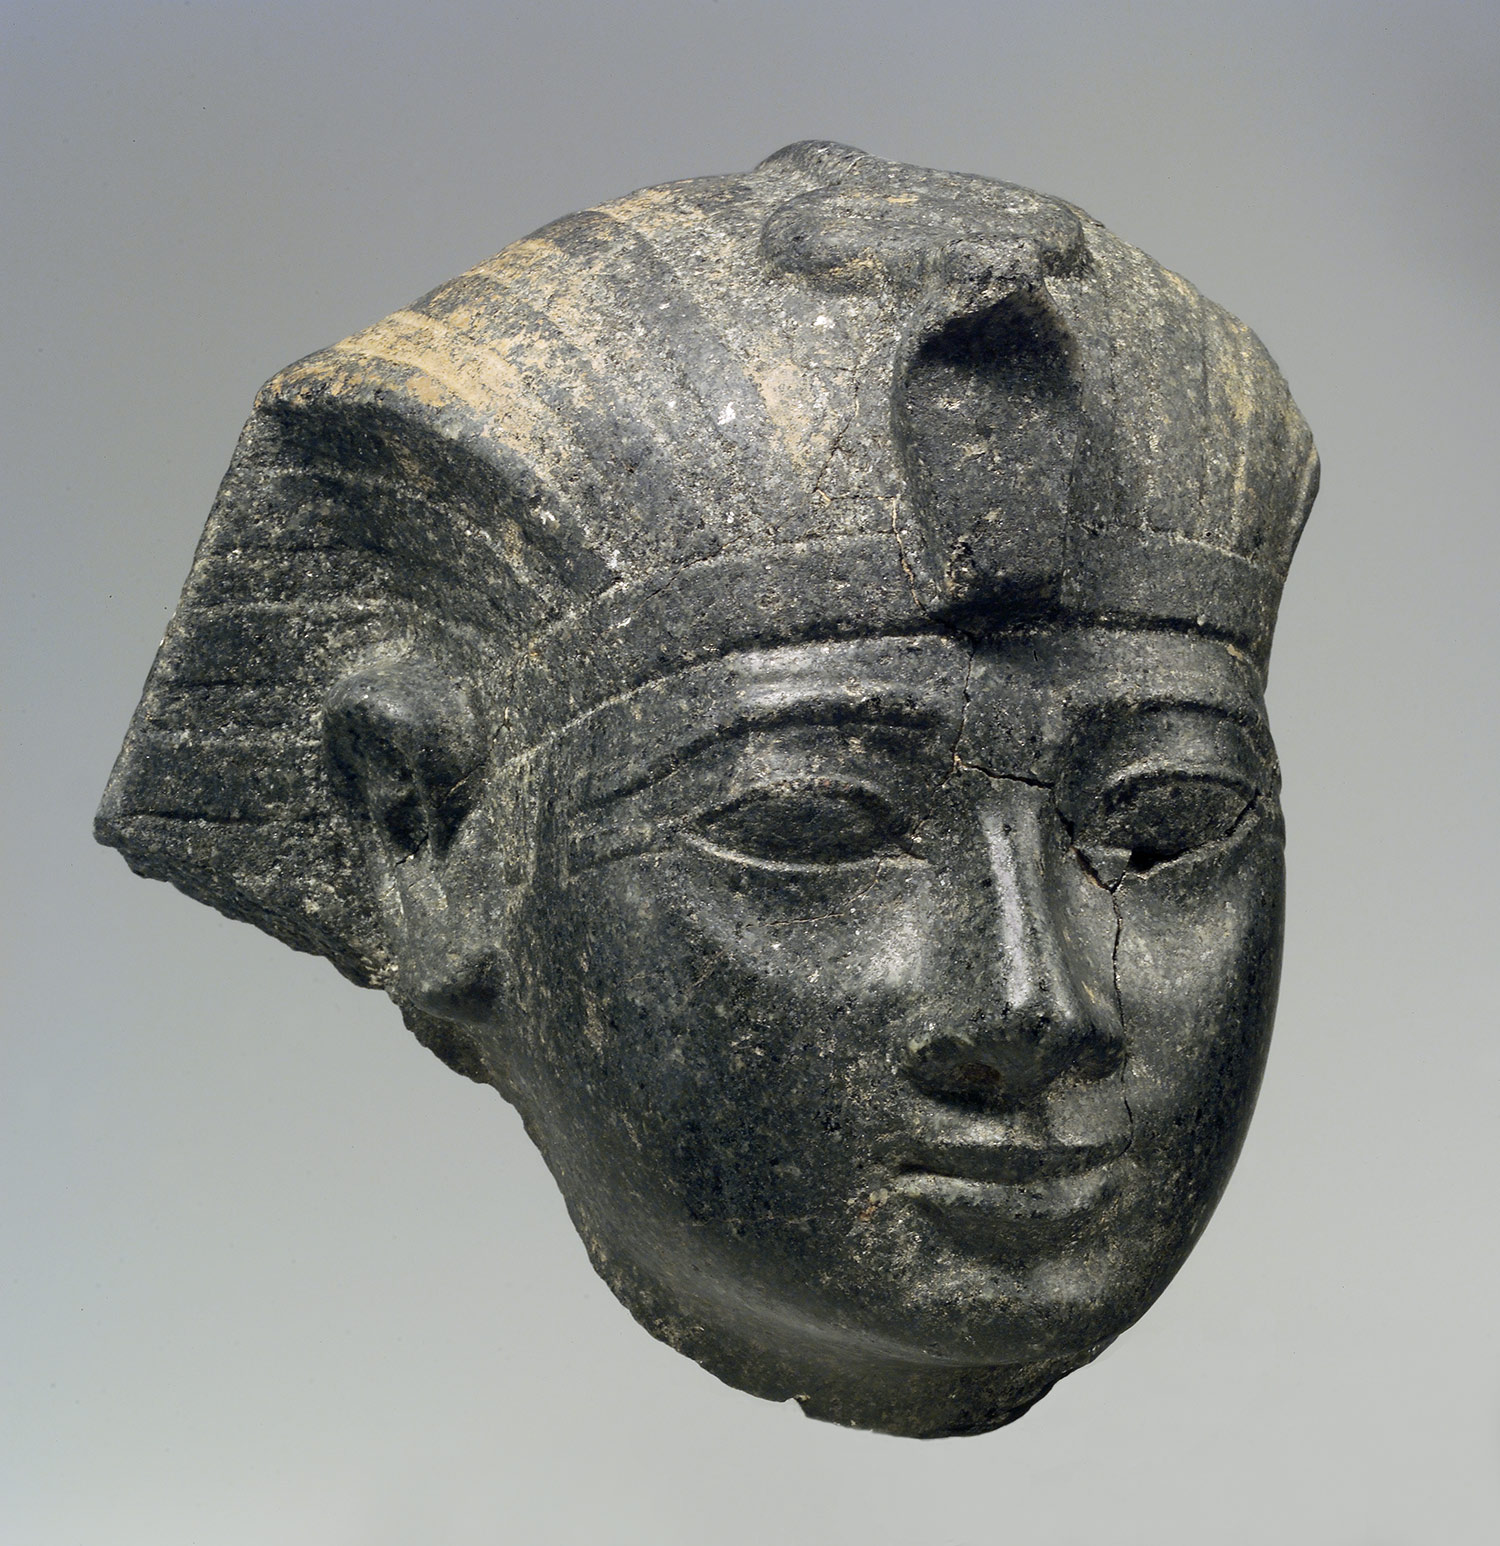 Head of Amenhotep I